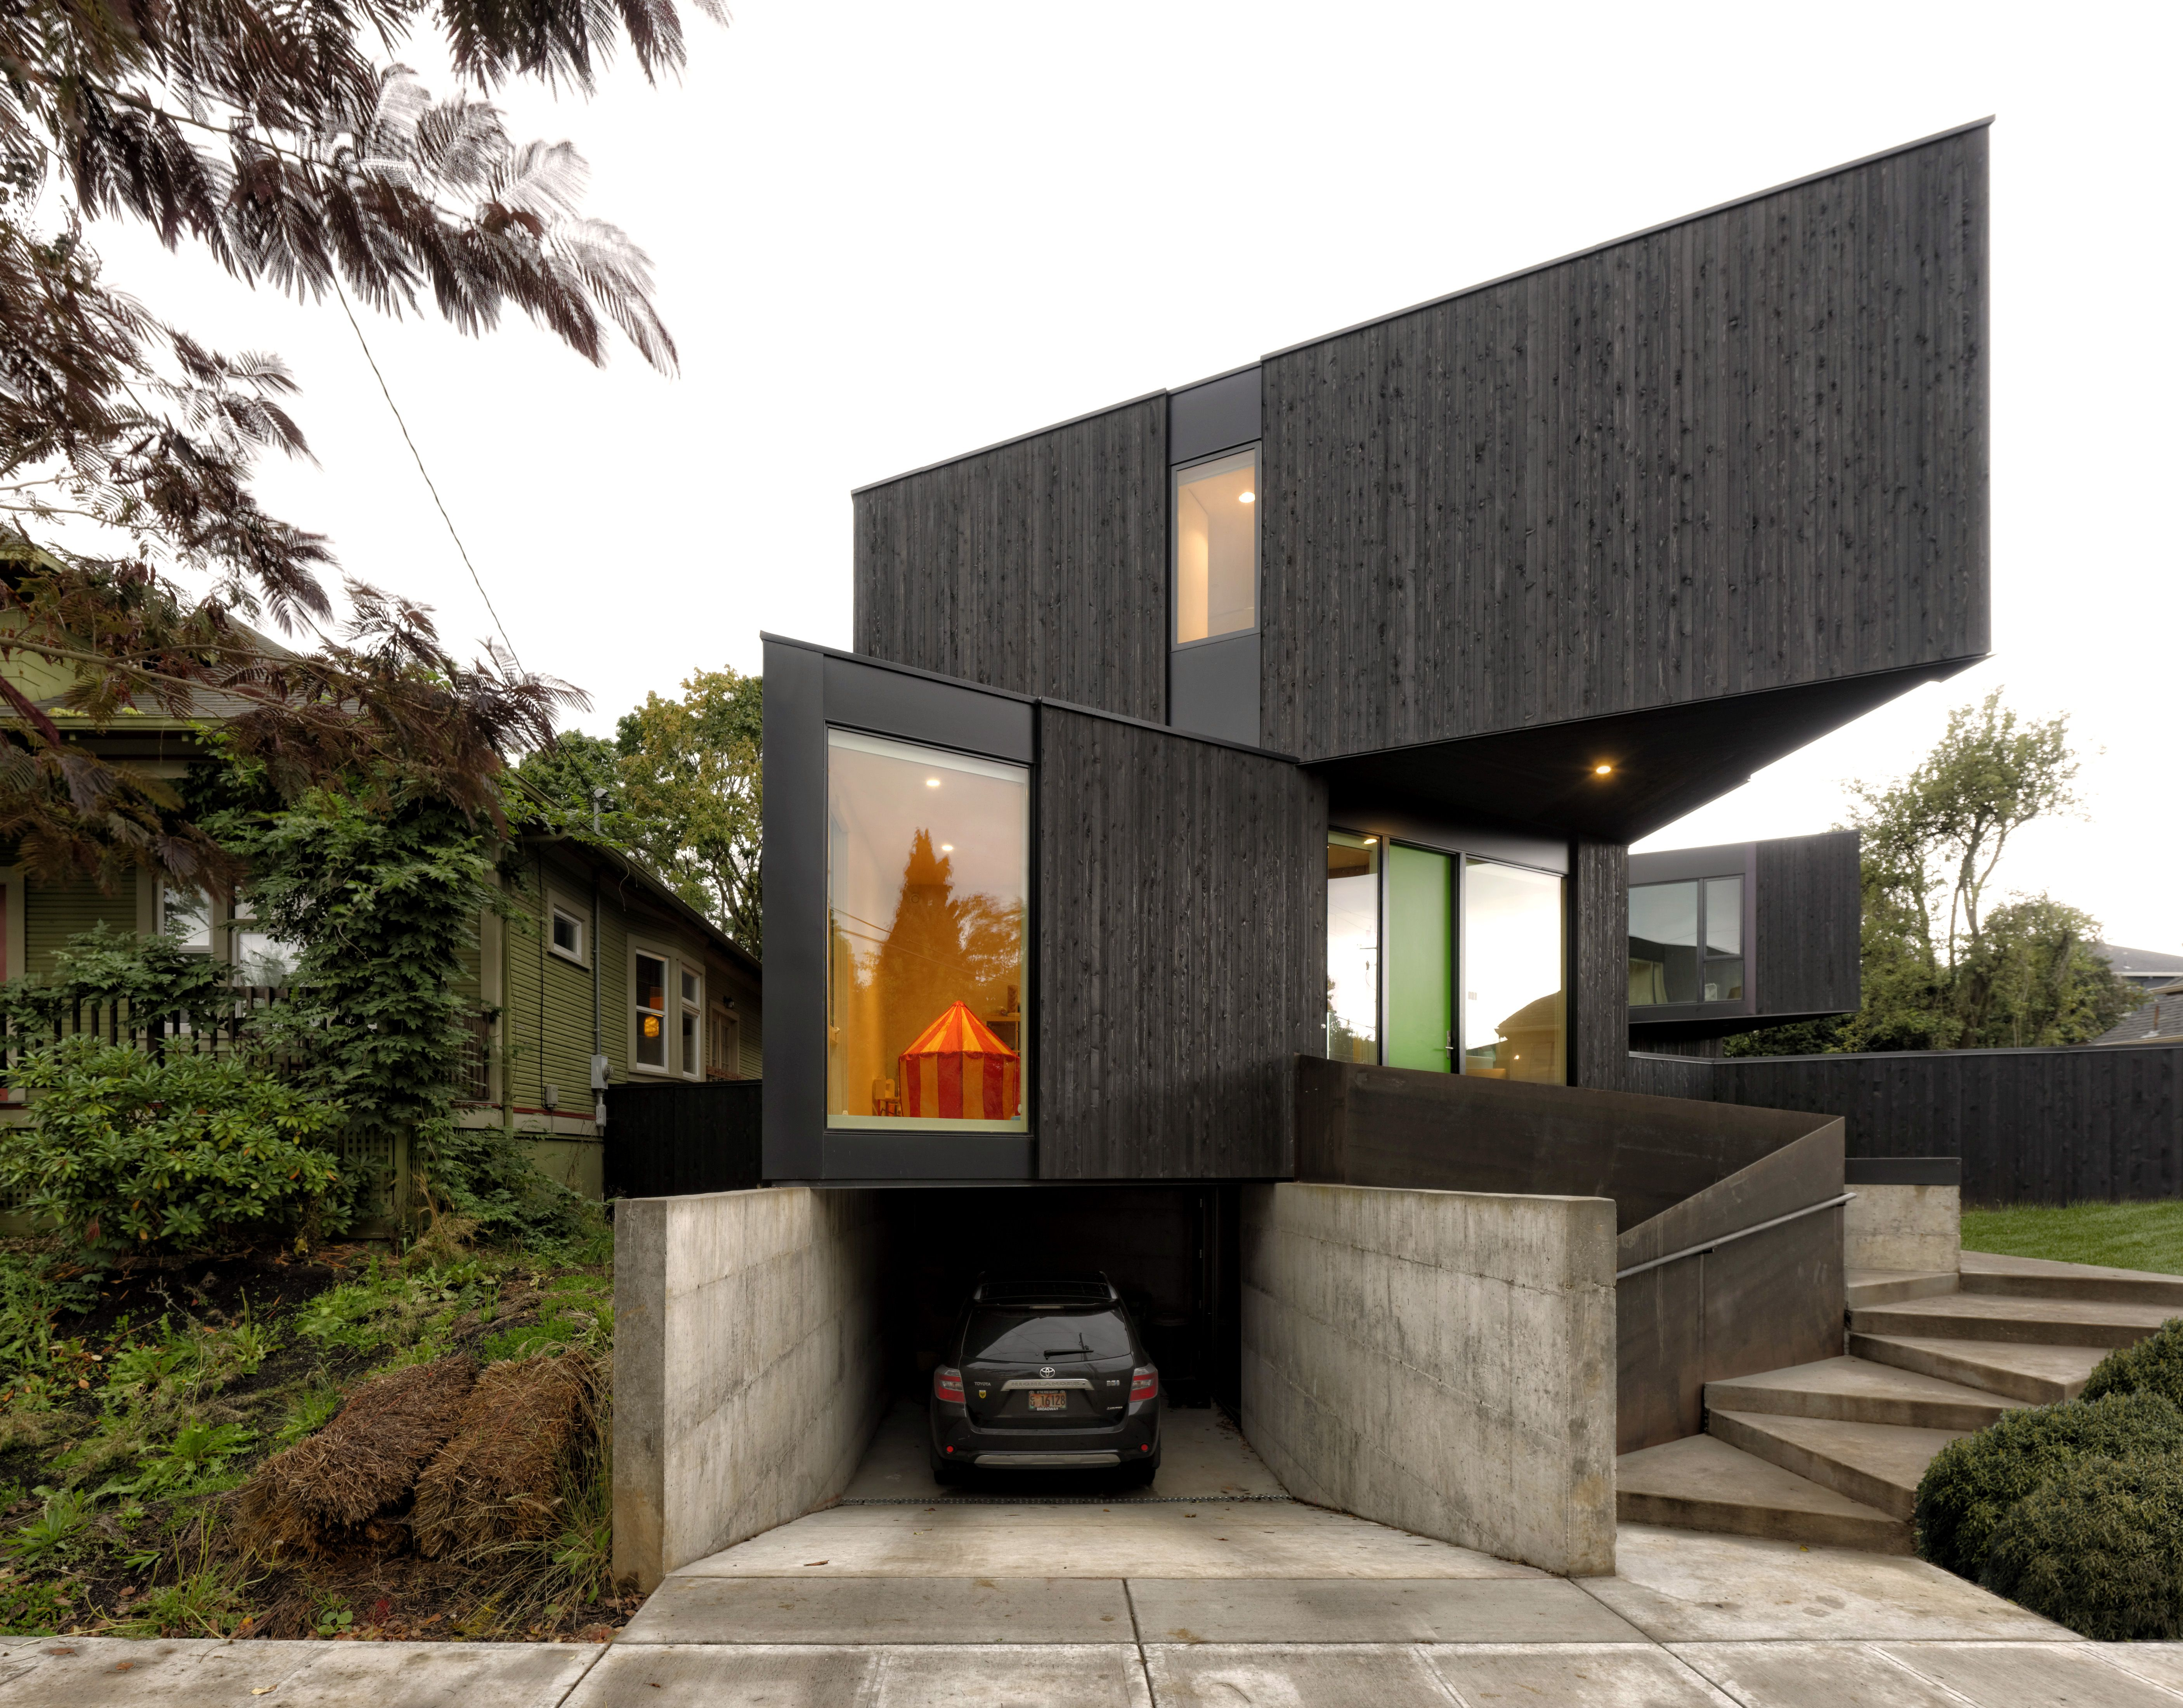 Prefab Houses Were Once The Holy Grail Of Design So Why Aren T There More Of Them The Washington Post